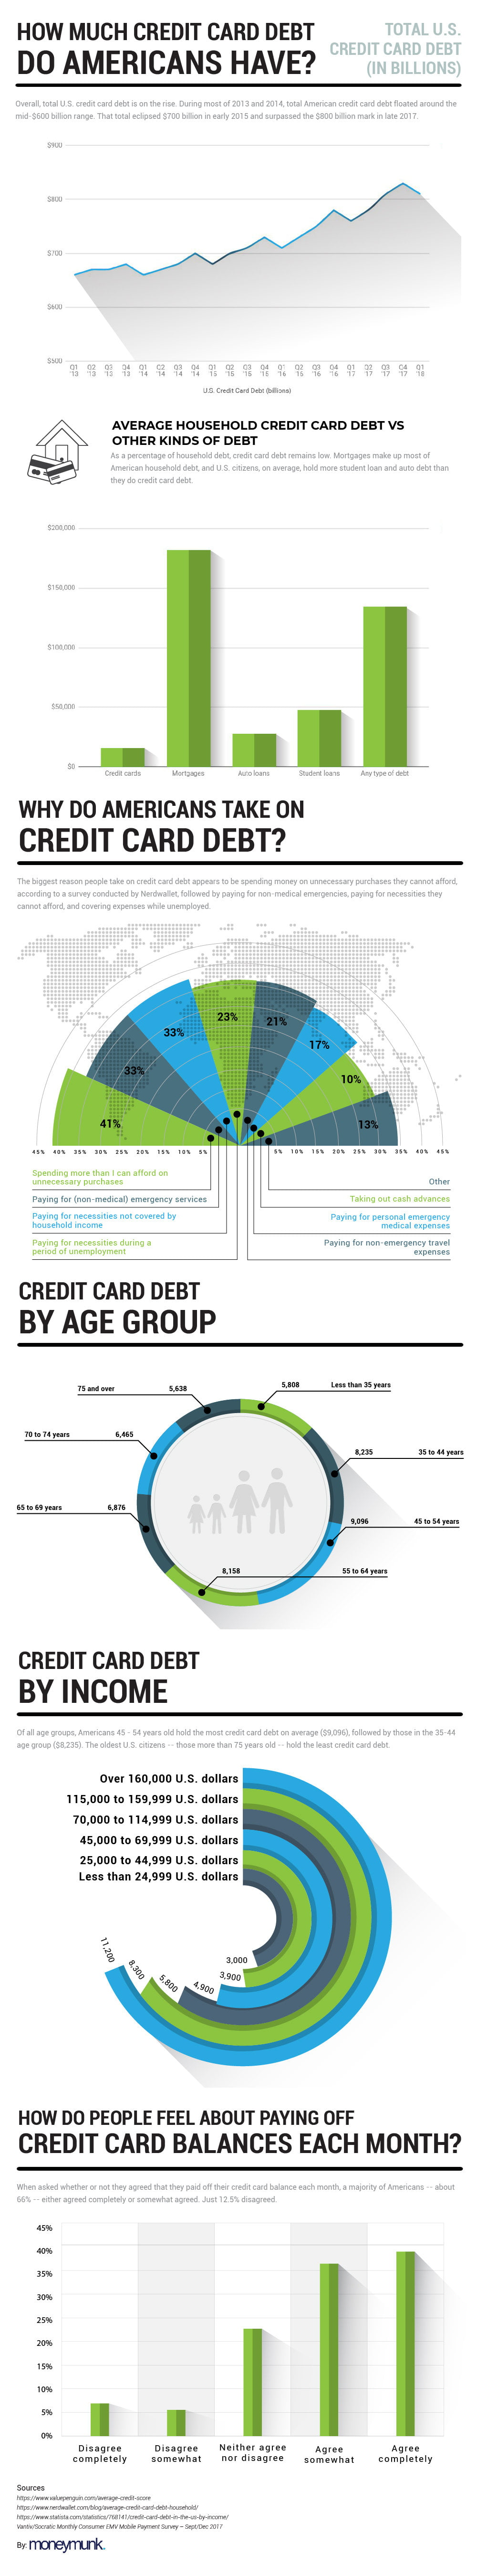 infographic of us credit card debt